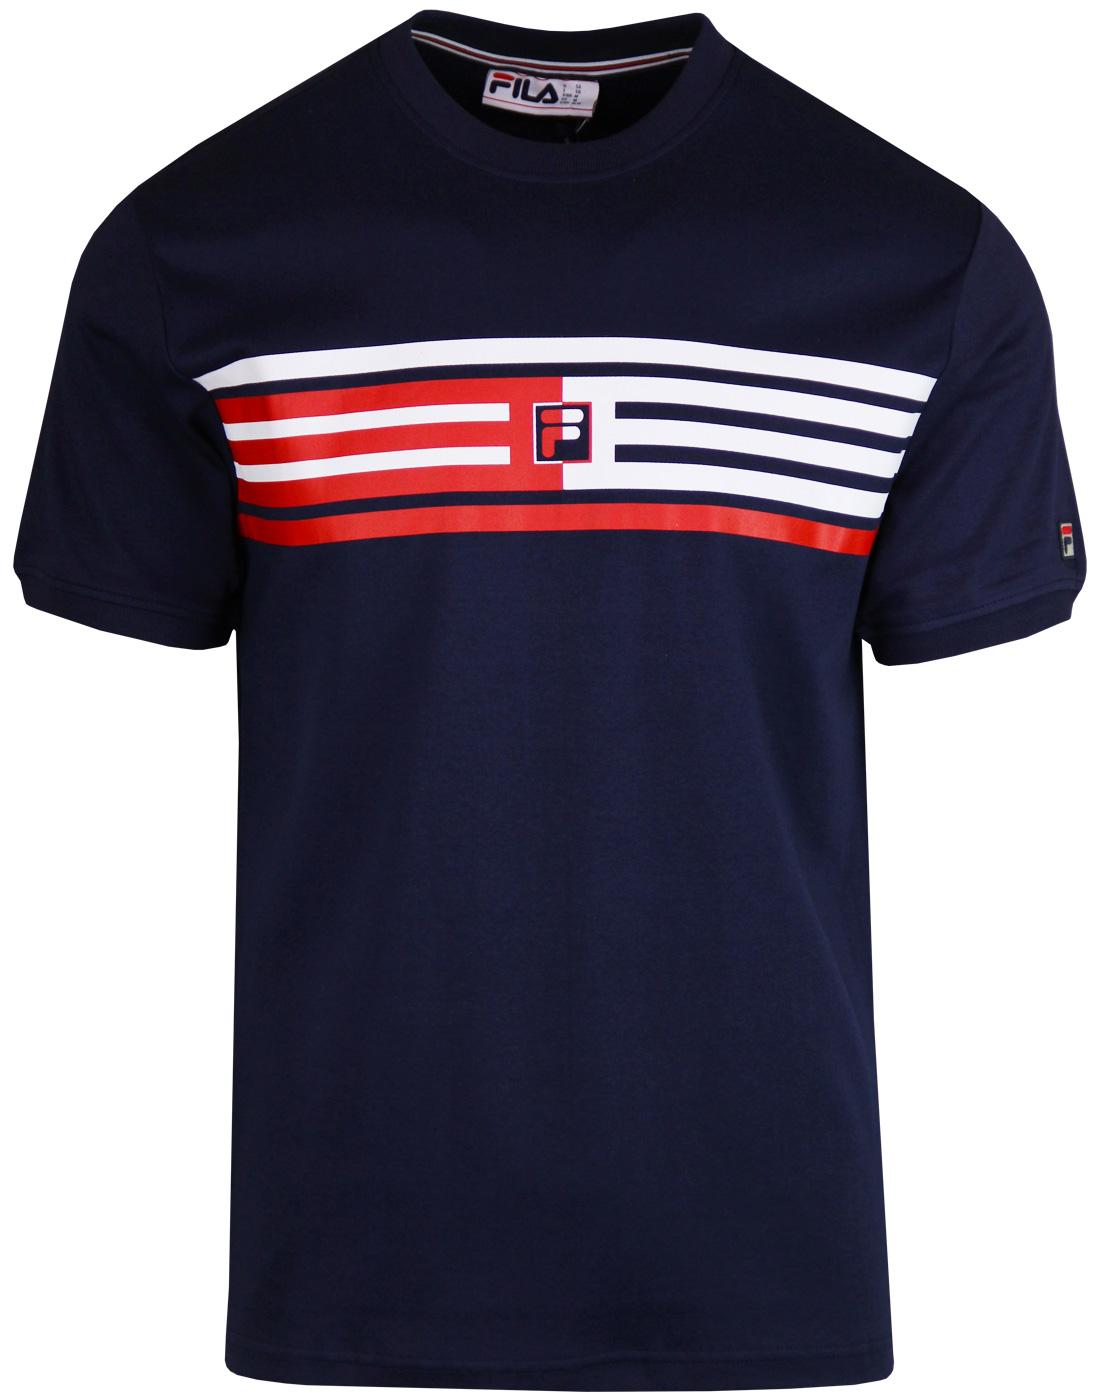 Bruno FILA VINTAGE Retro 80s F Box Stripe T-Shirt